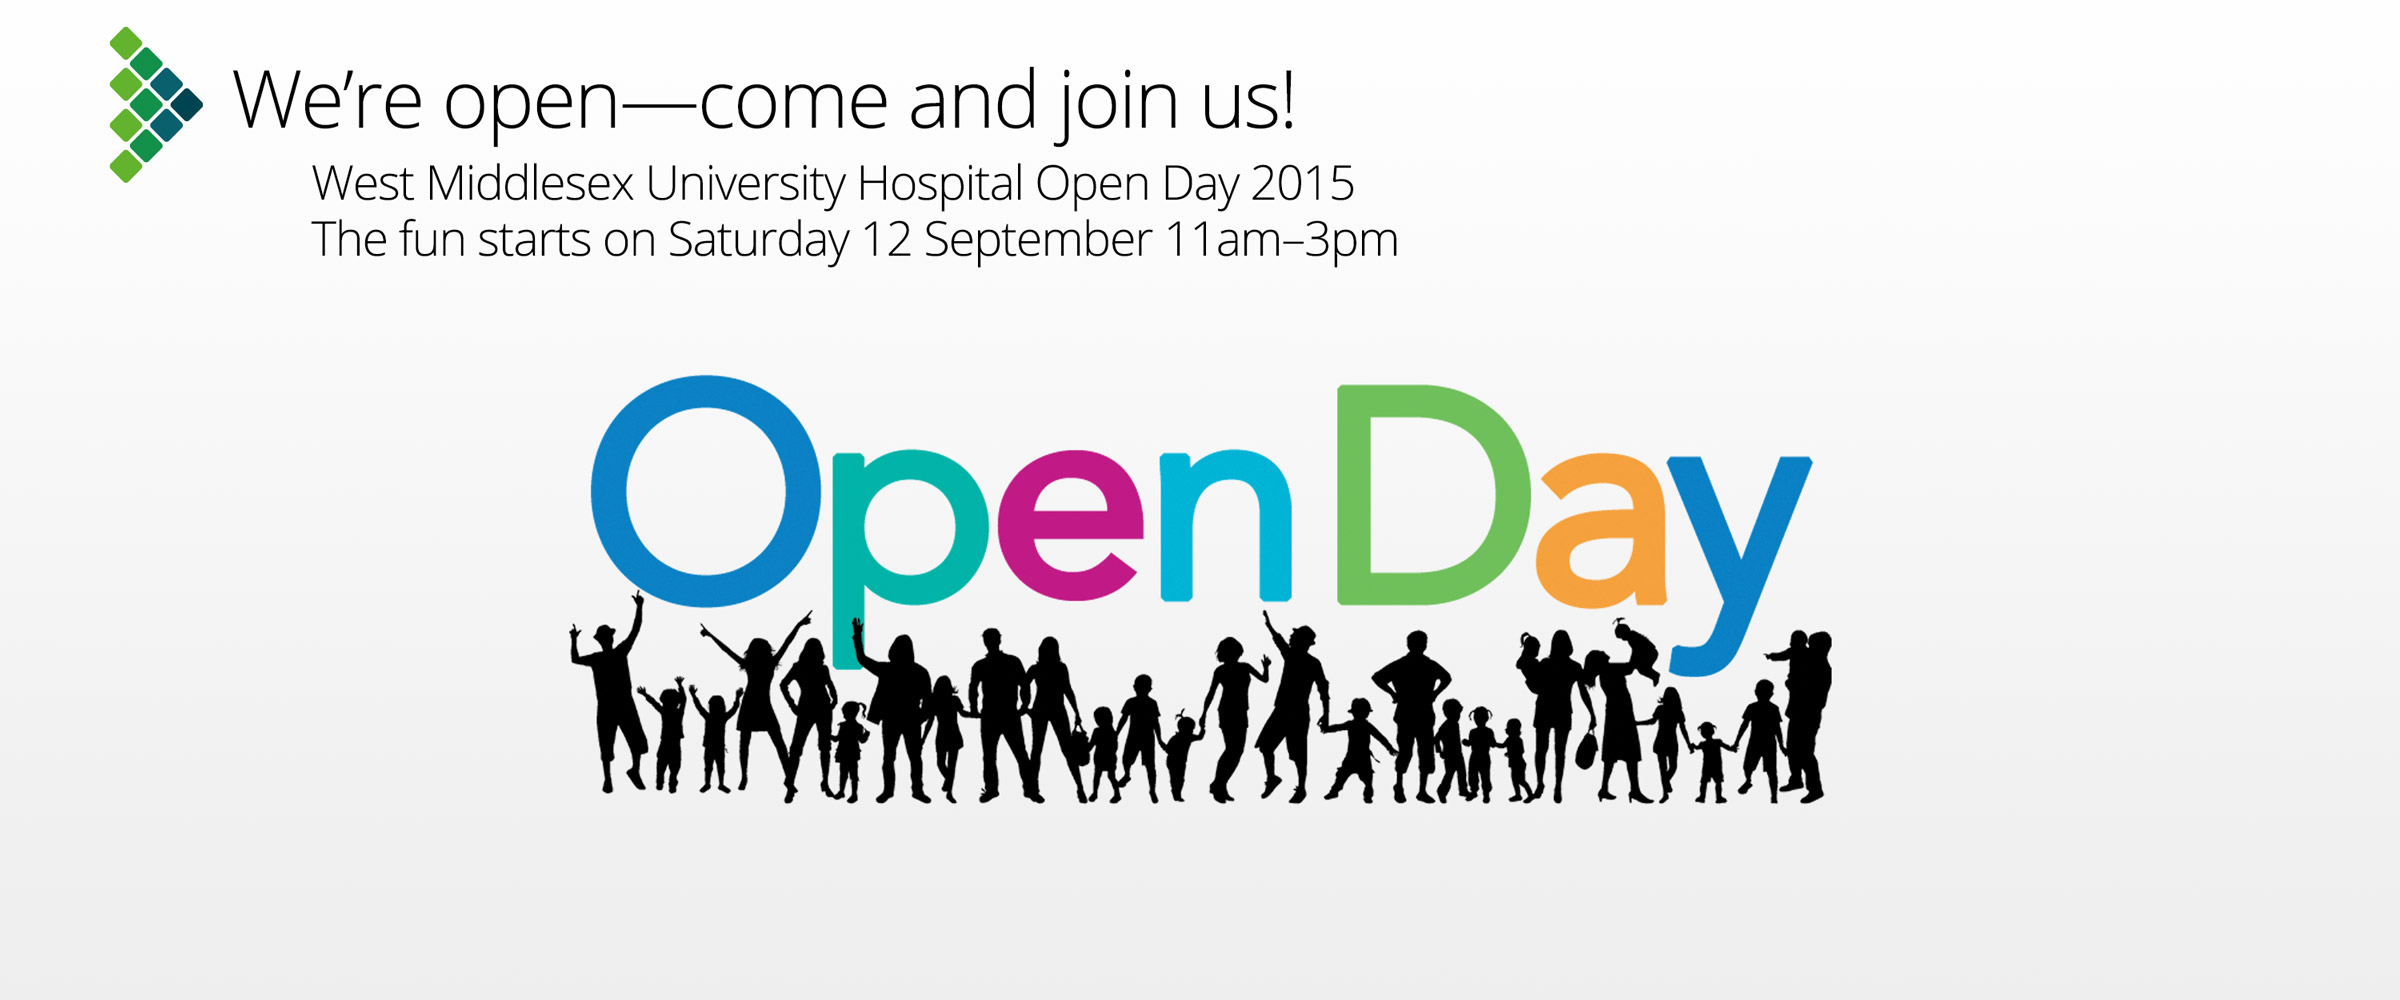 West Middlesex University Hospital Open Day 2015—come and join us!